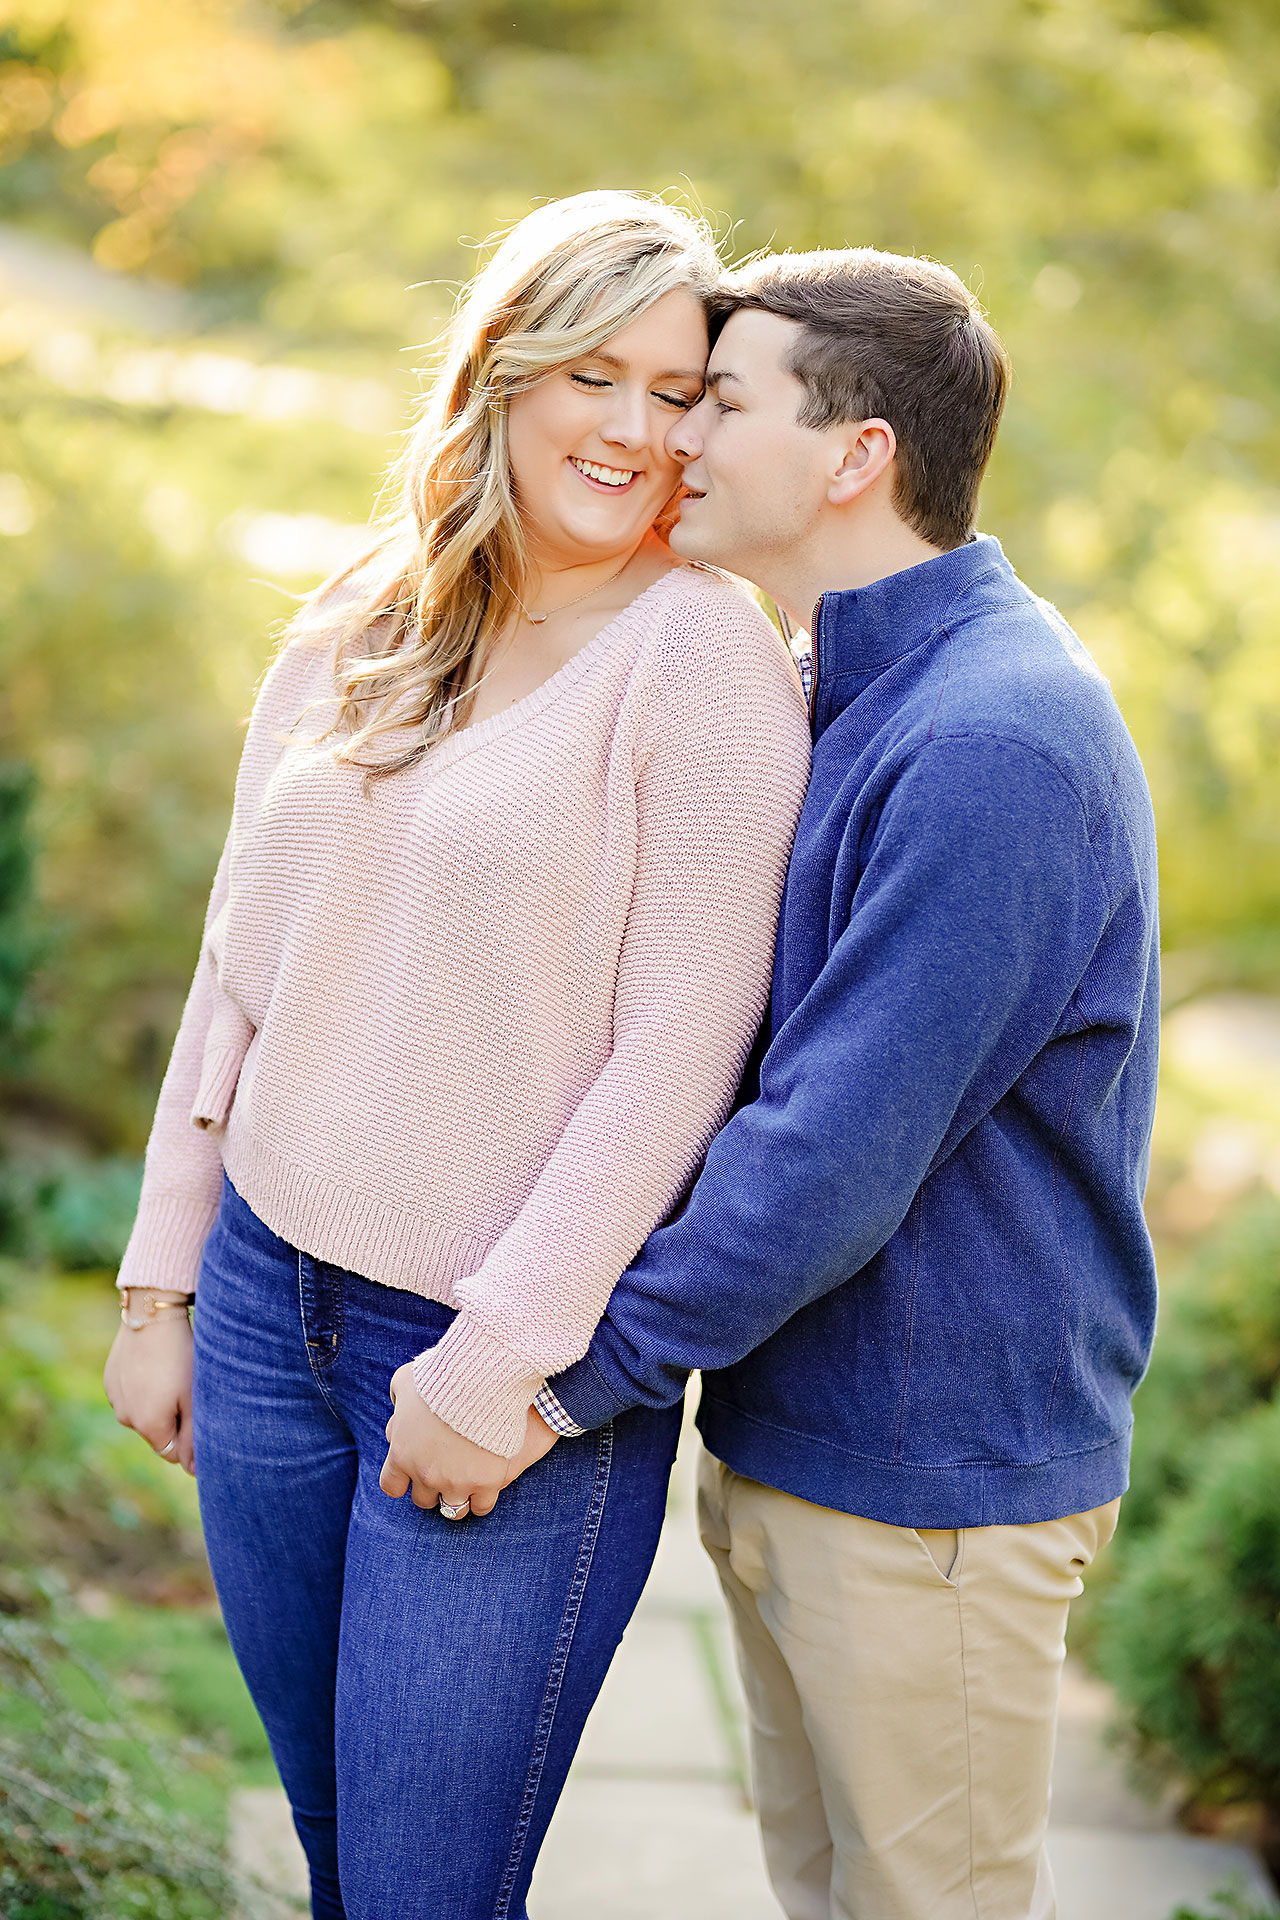 Taylor Case Newfields Engagement Session 071